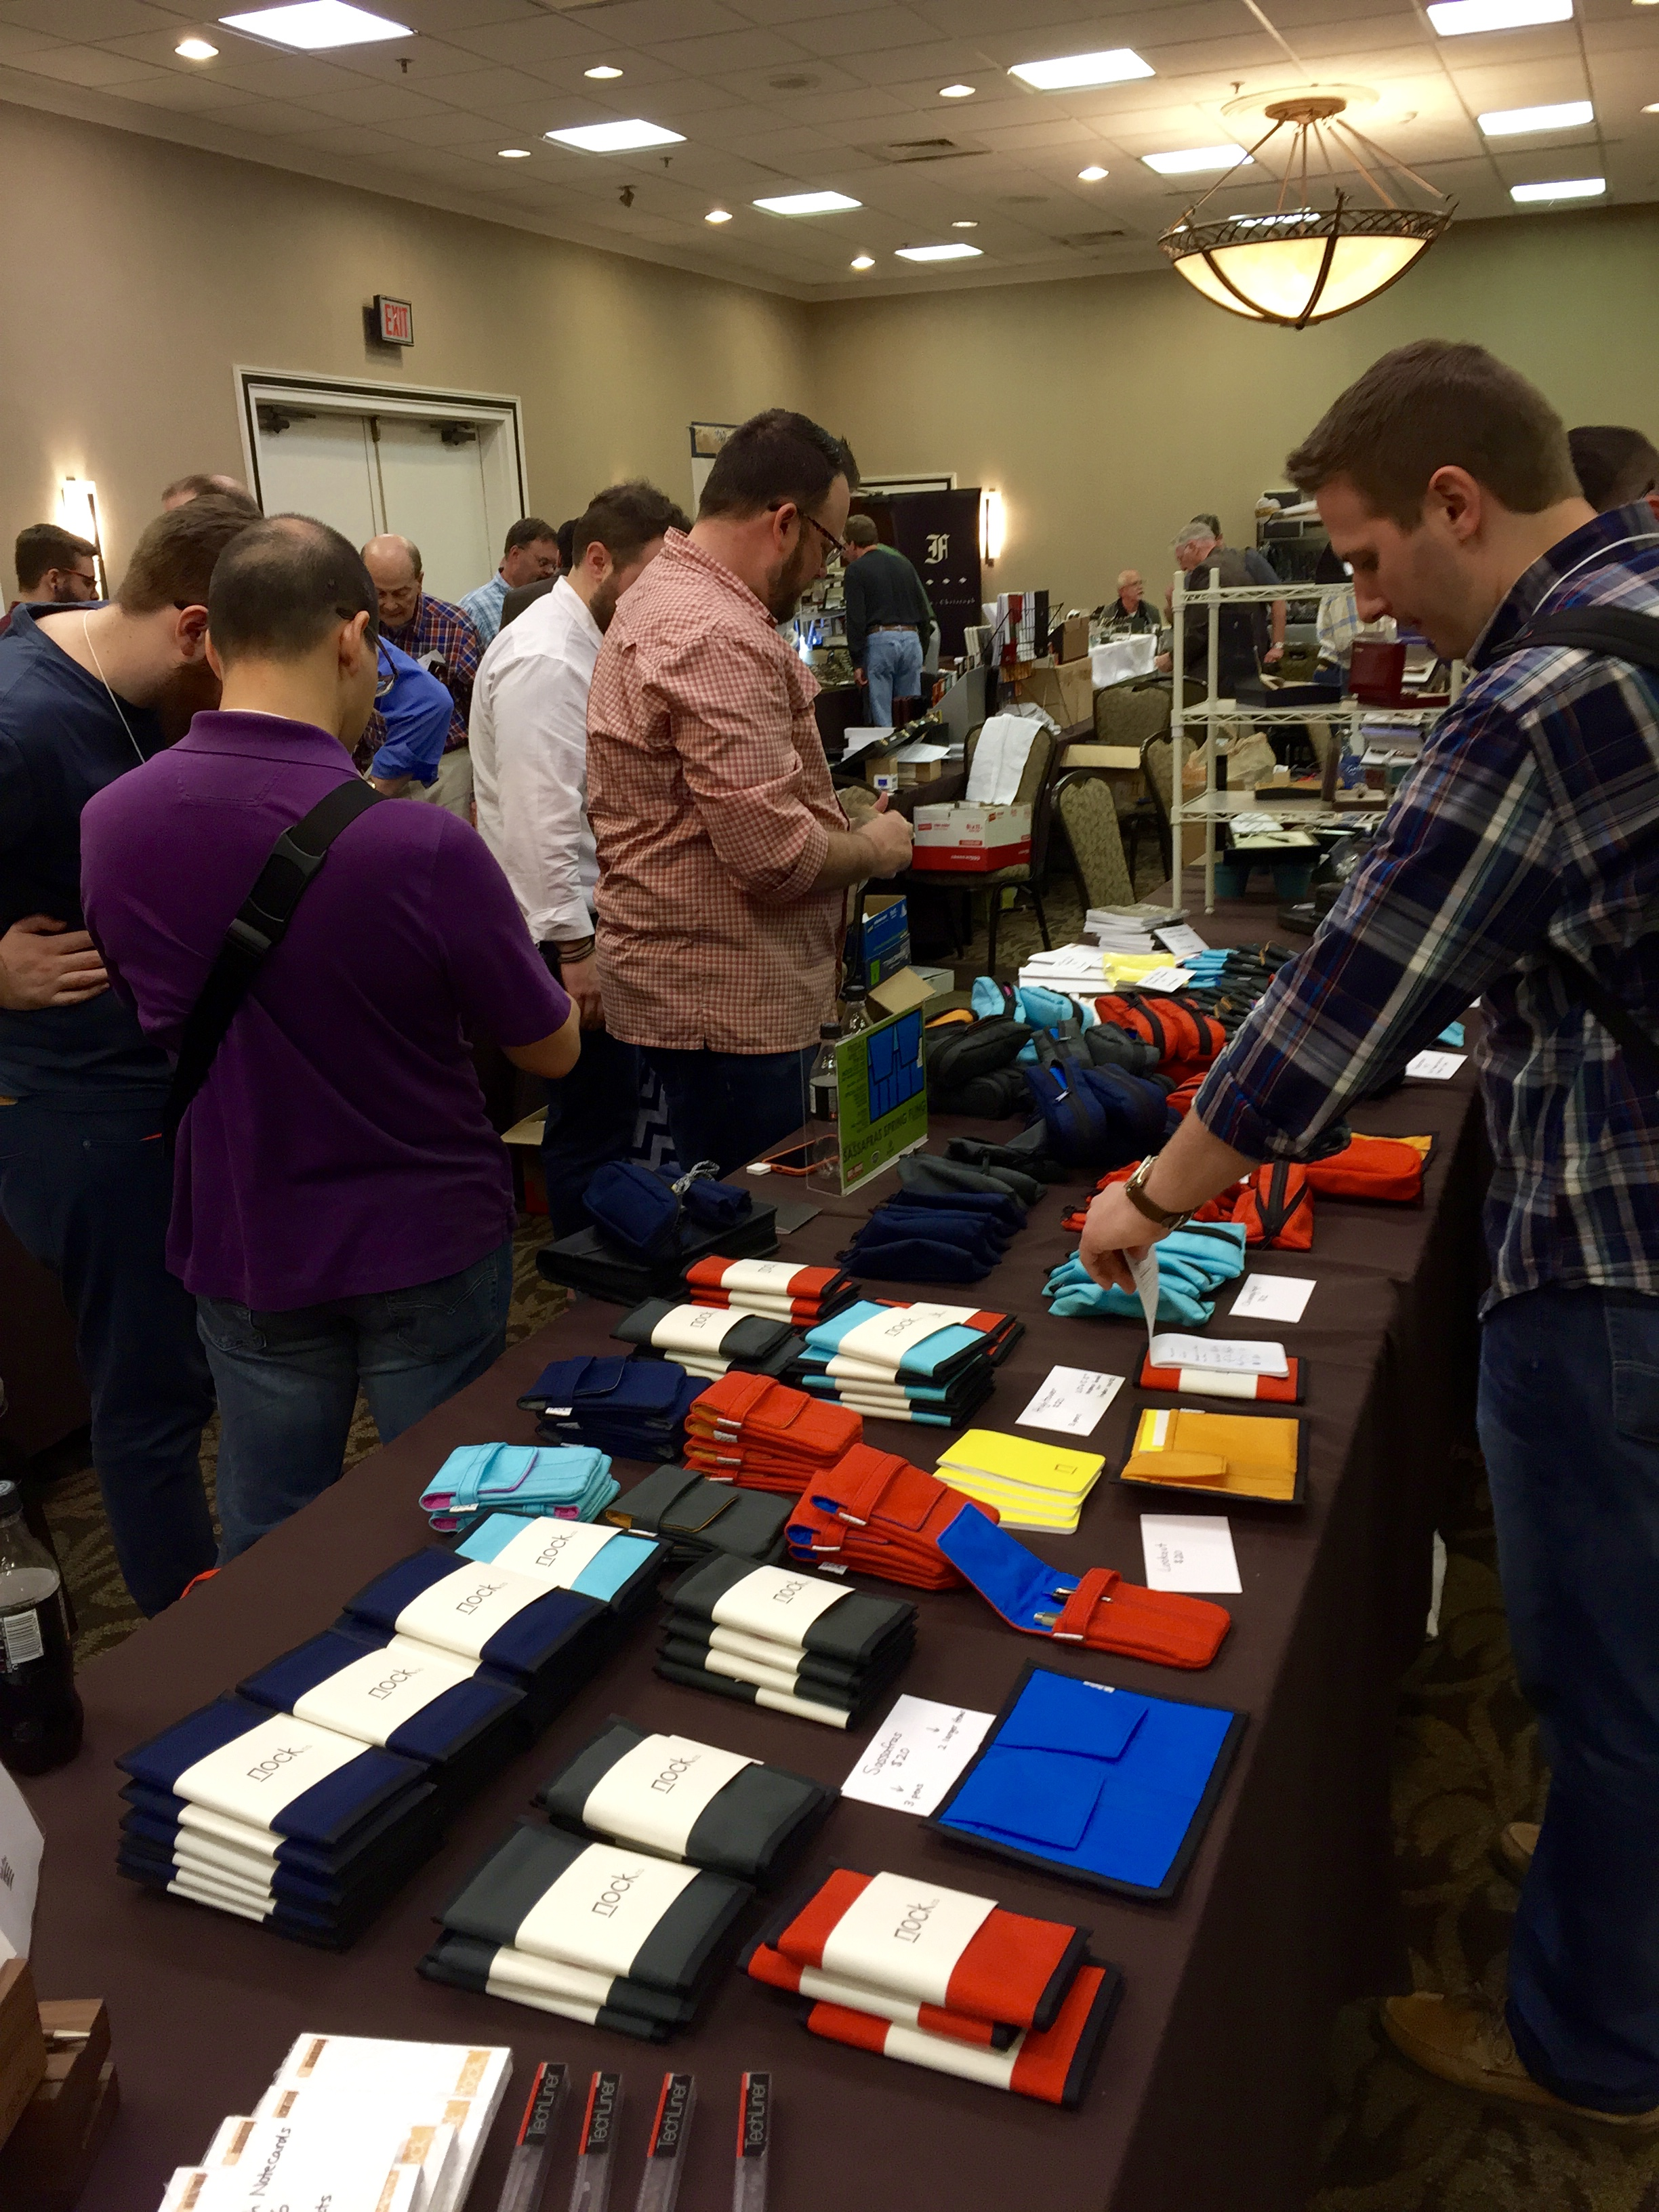 Scenes from the 2015 Atlanta Pen Show, which featured, on the whole, a much younger crowd and lots of new companies like Nock Co. and Franklin-Christoph. To many of the attendees, it was as if aliens landed on the hotel lawn.